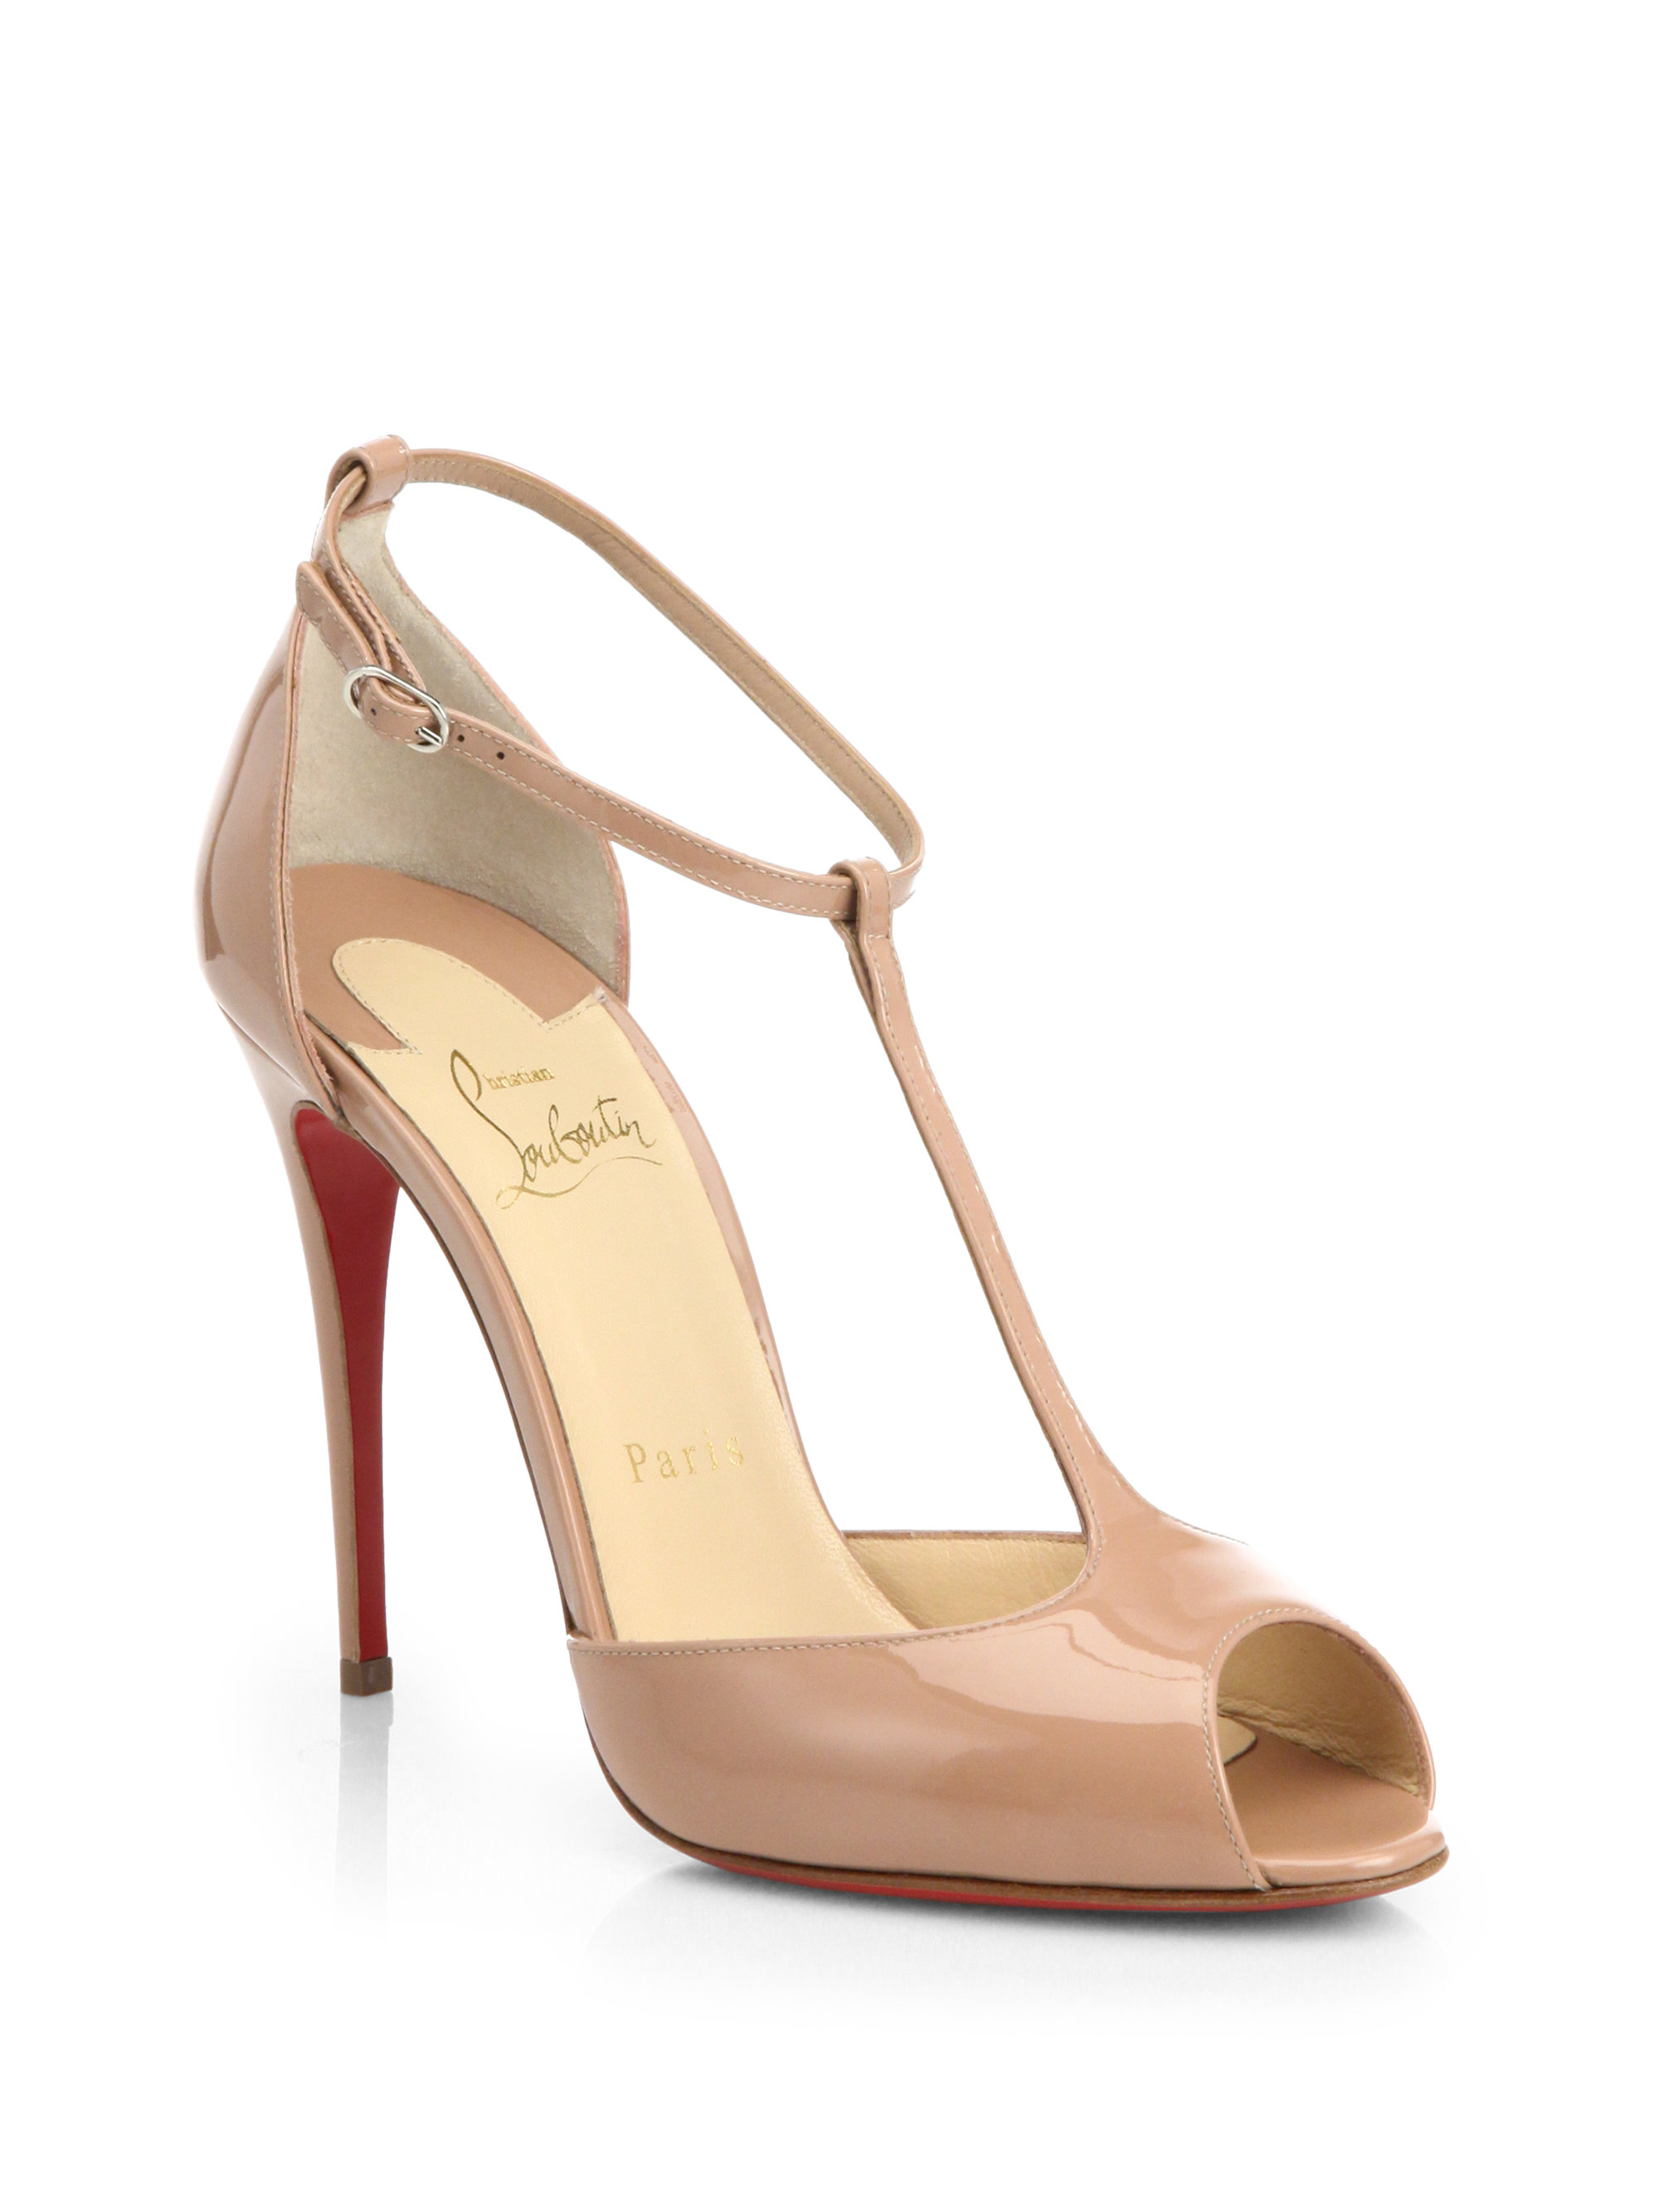 32fb53d3fc2 Lyst - Christian Louboutin Senora Patent Leather T-strap Pumps in ...